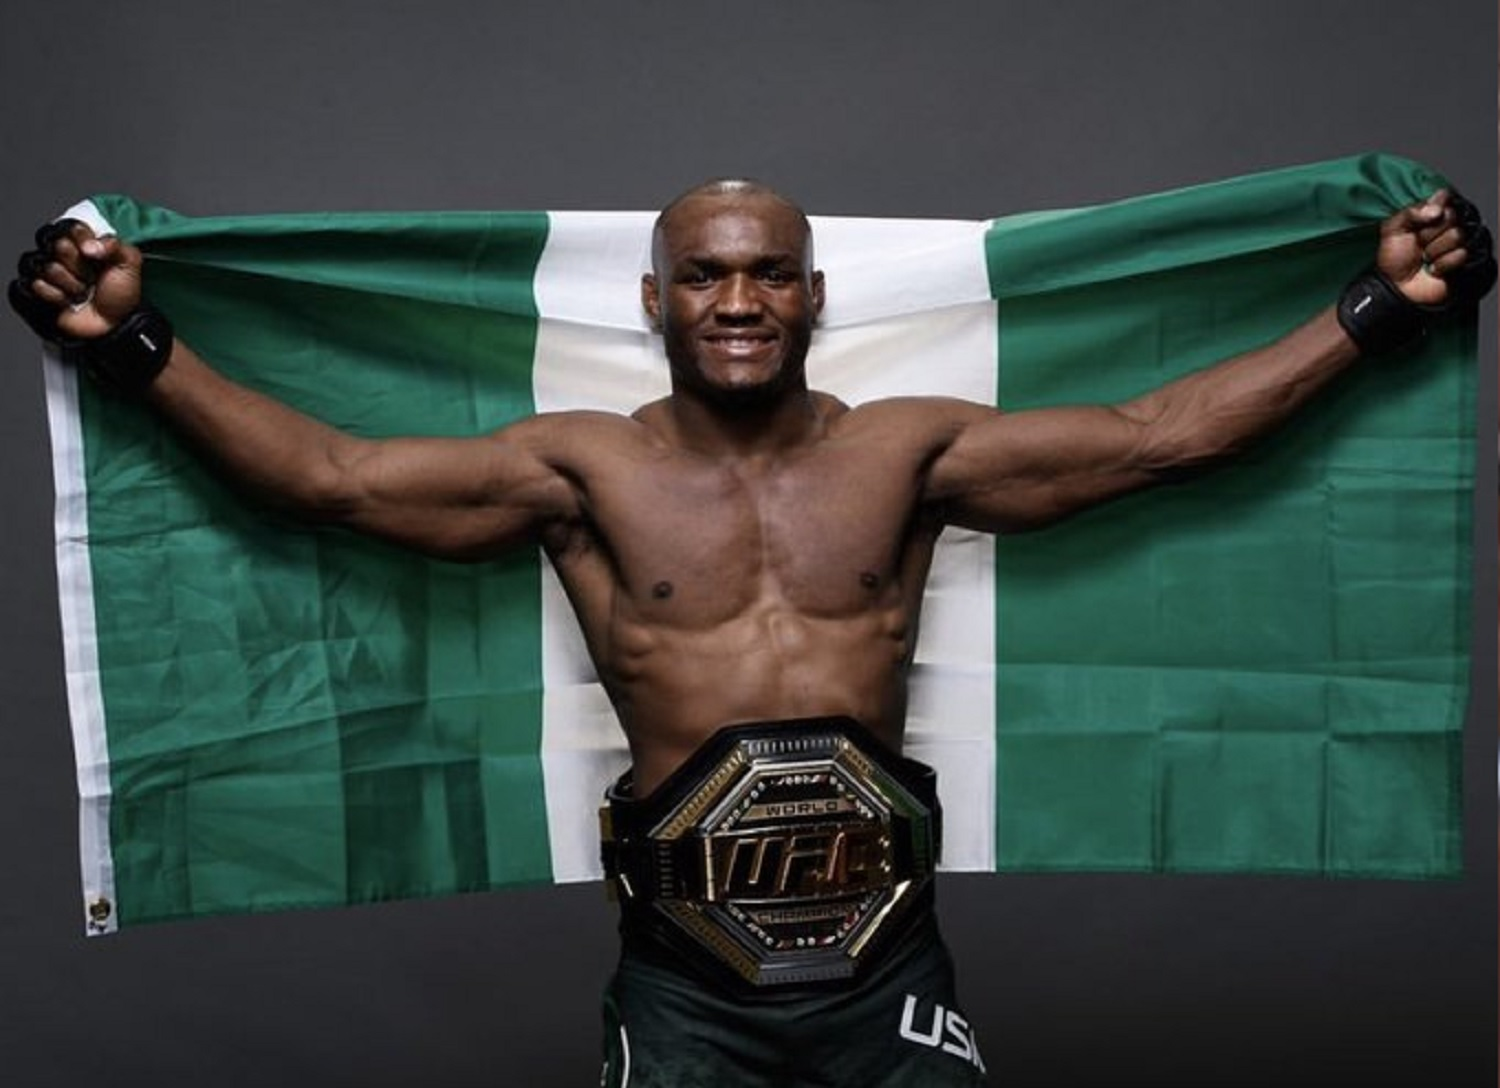 UFC: Kamaru Usman Suspended For 180 Days